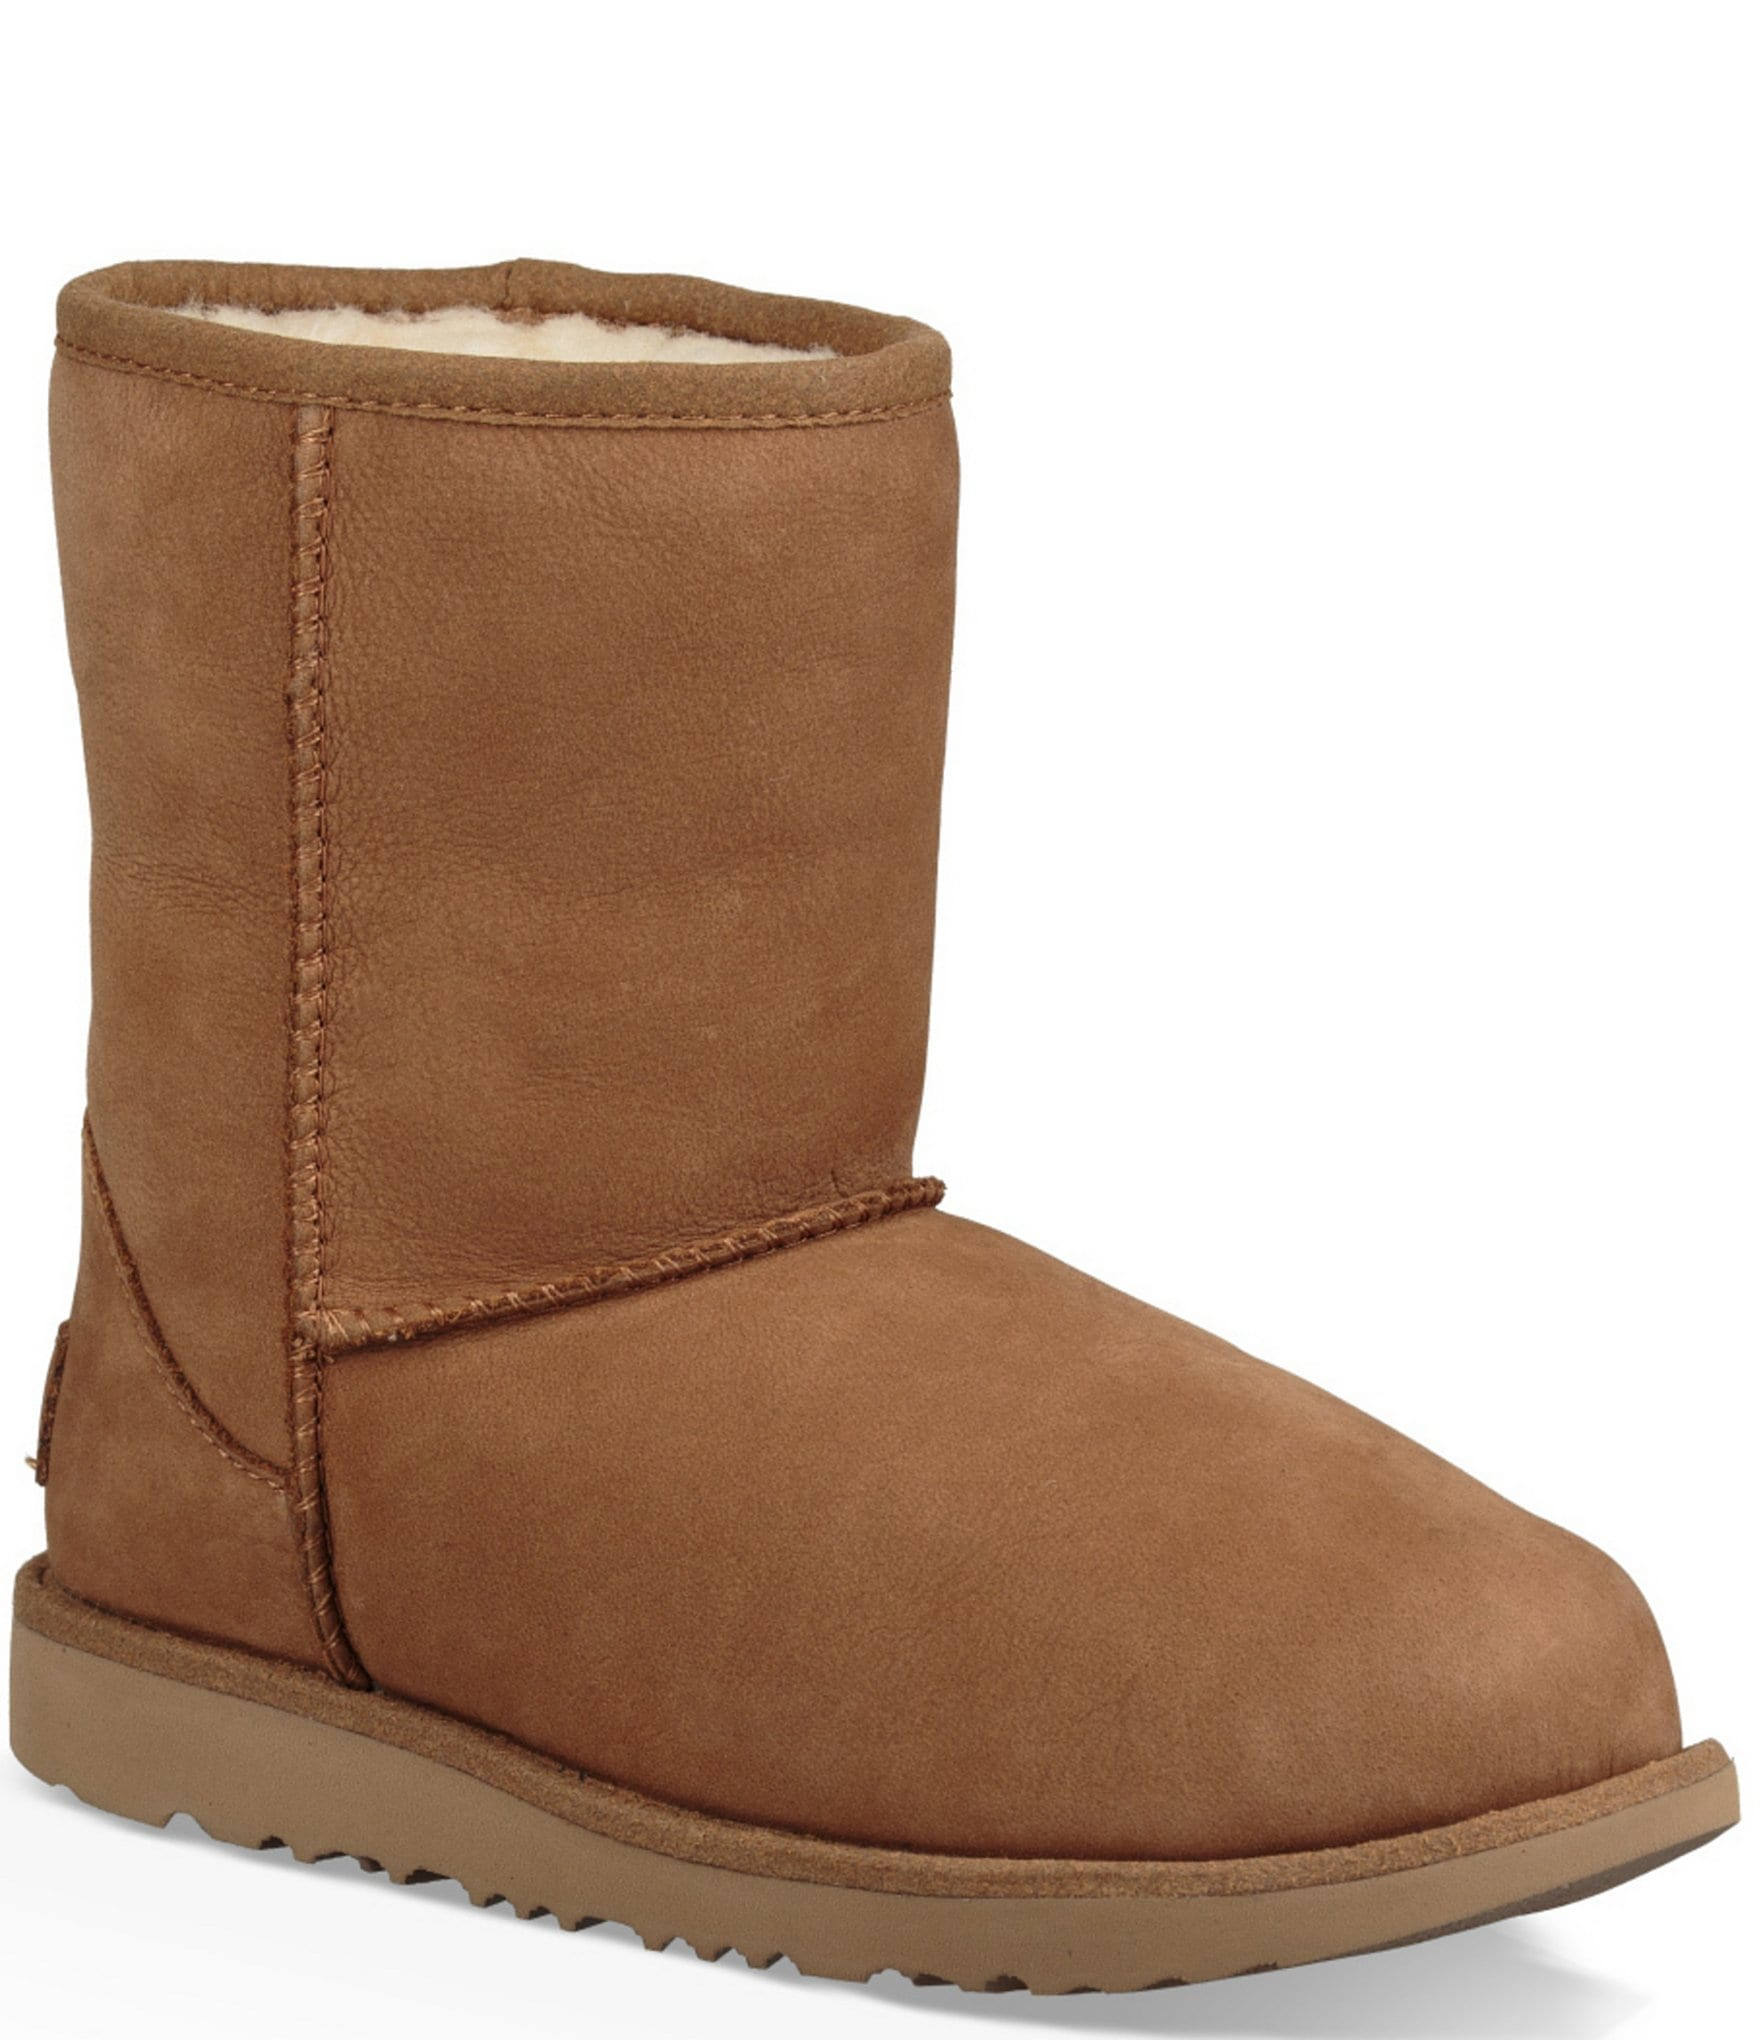 0e963be3161 UGG® Girls' Classic Short II Waterproof Boots | Dillard's